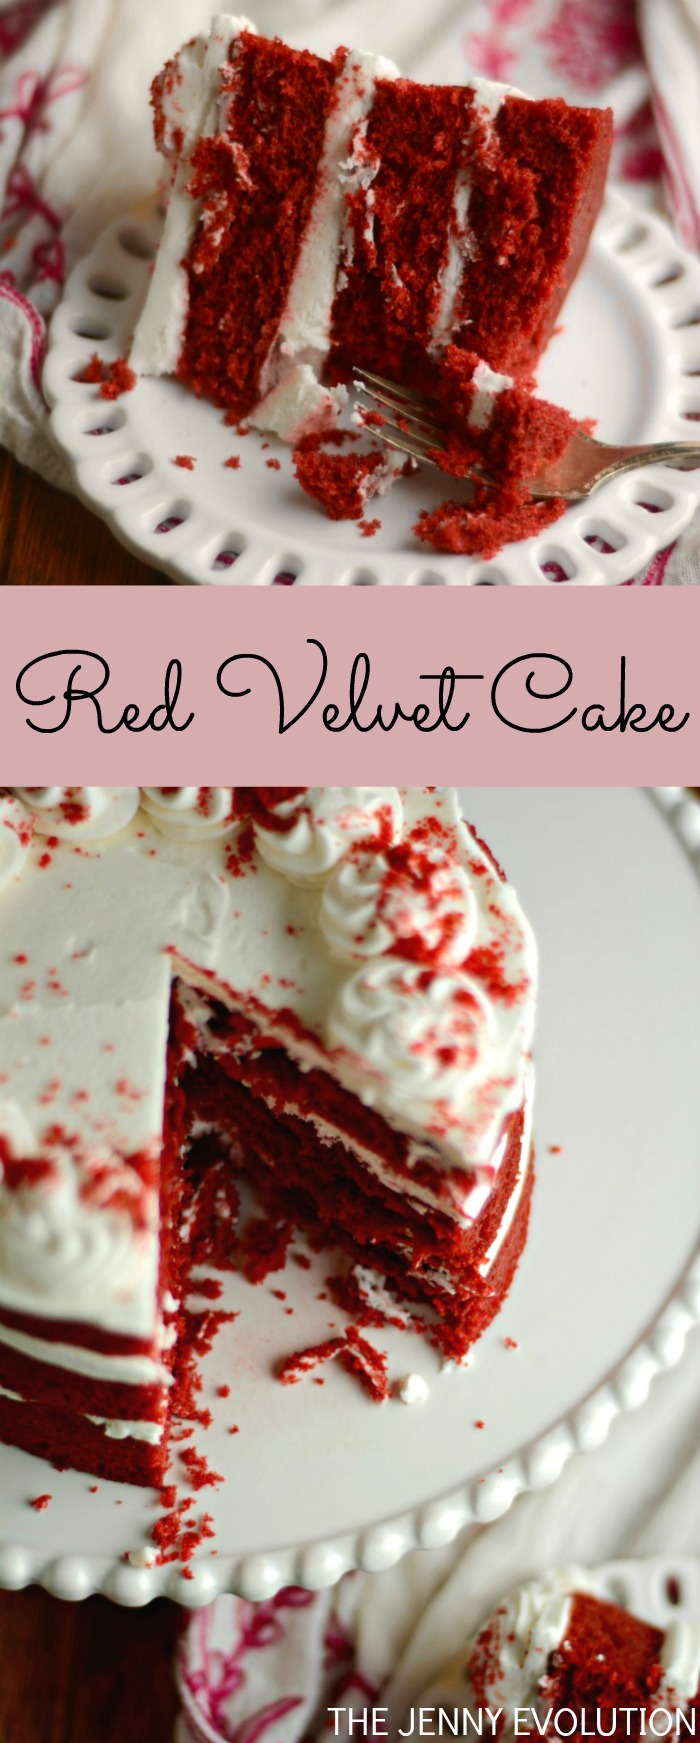 Southern Red Velvet Cake Recipe Food Network inducedinfo